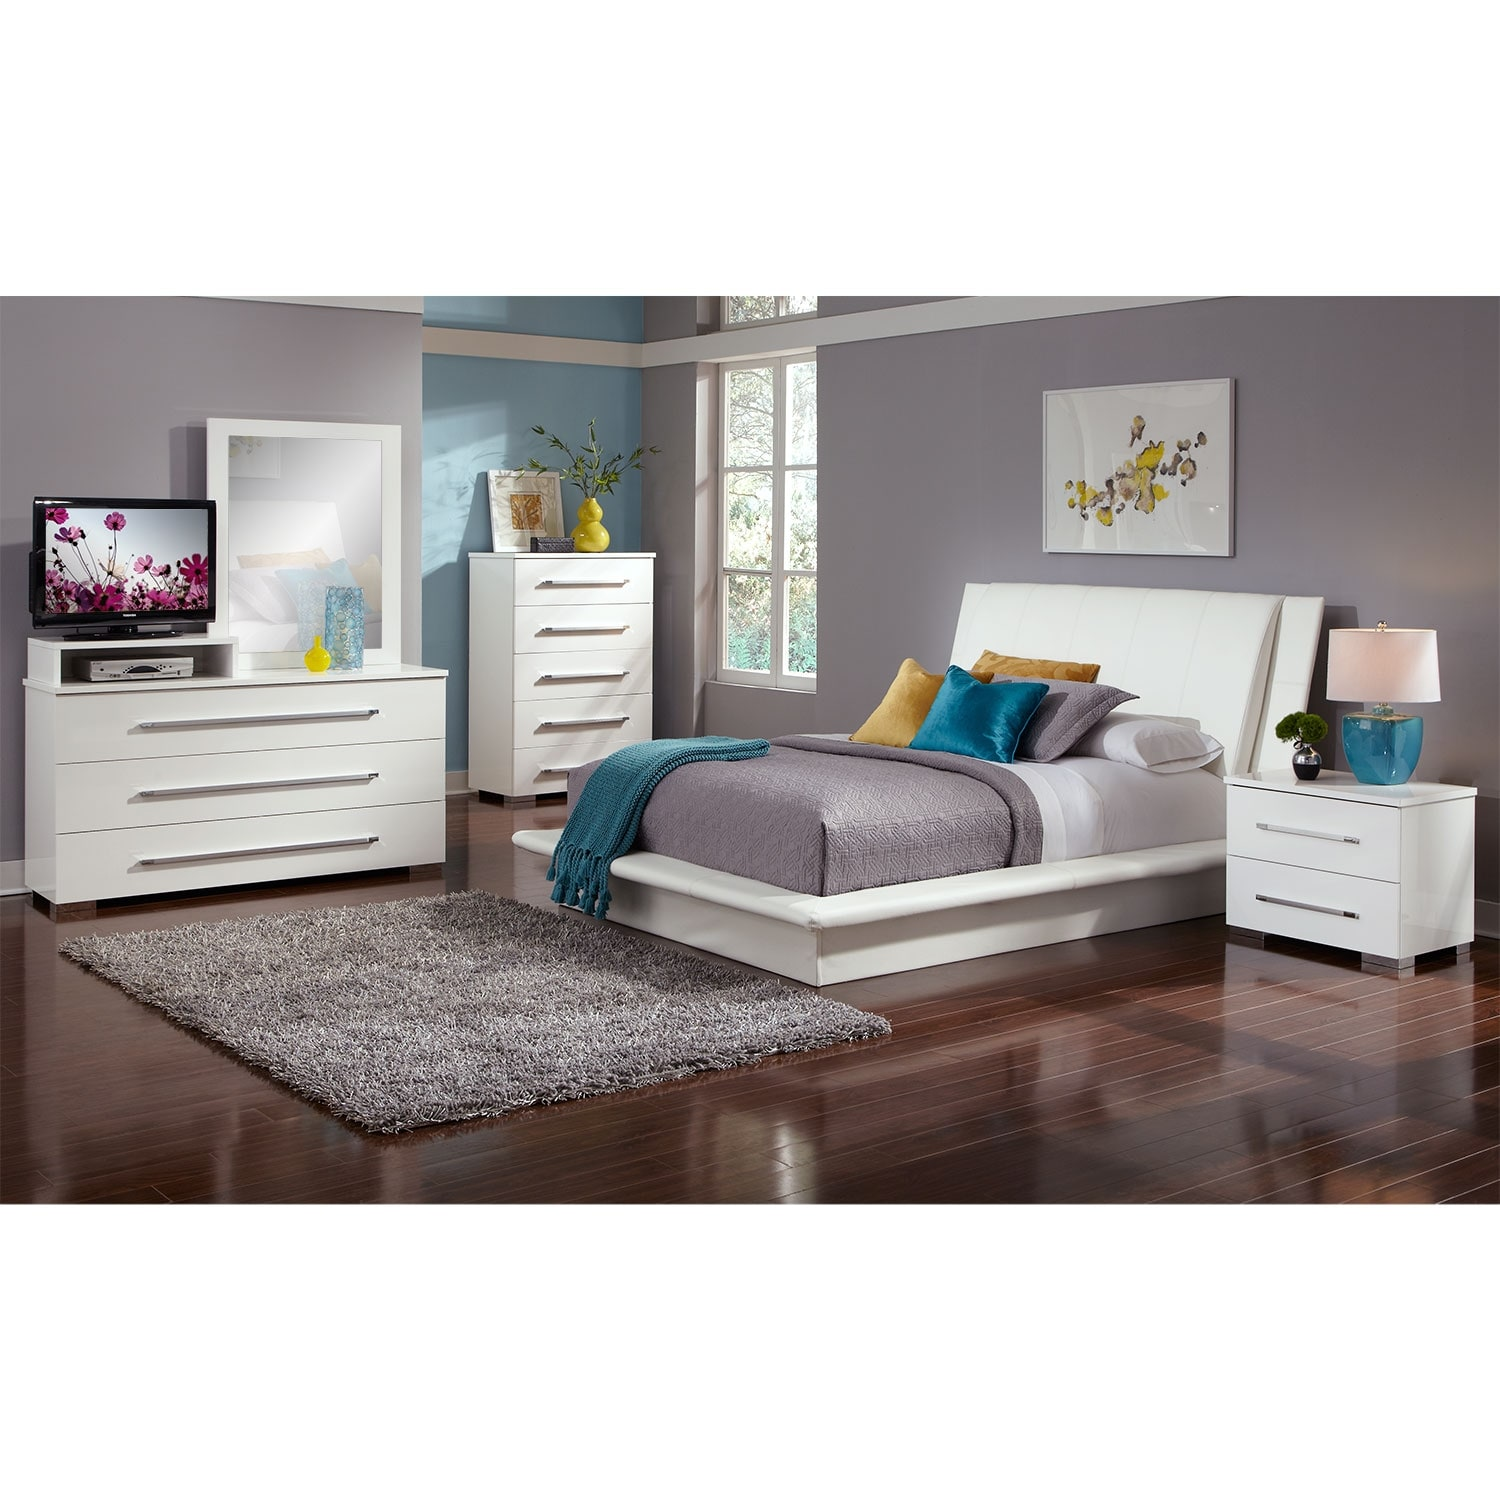 dimora queen upholstered bed white value city 17687 | 370832